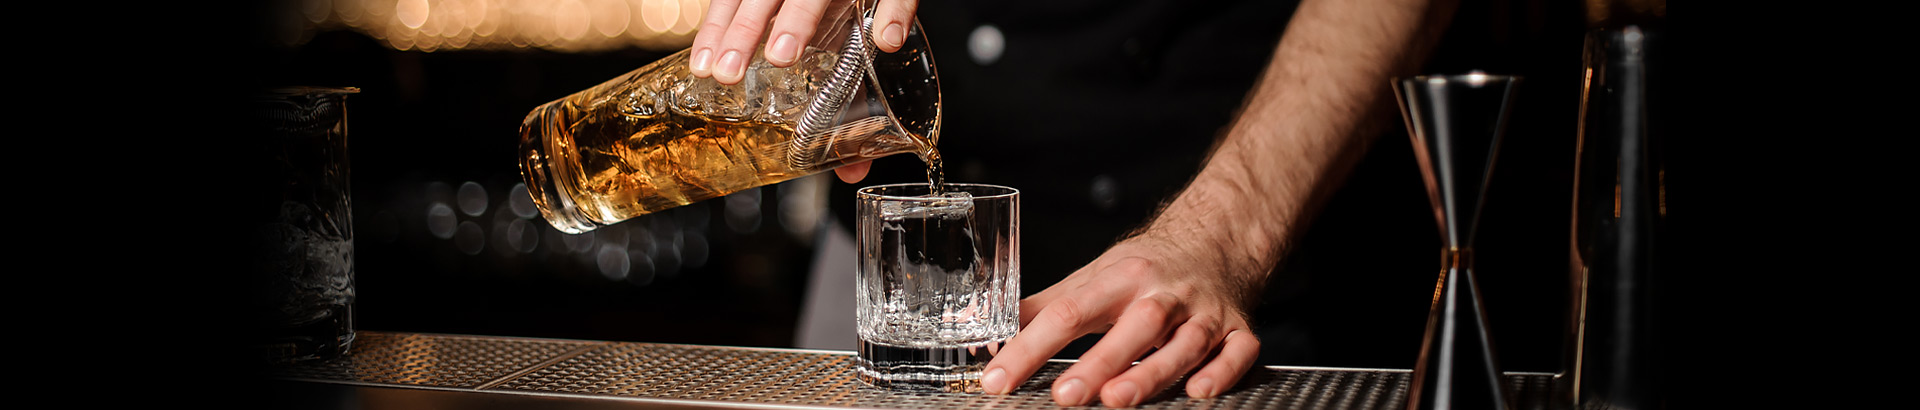 Close up of drink being poured into glass